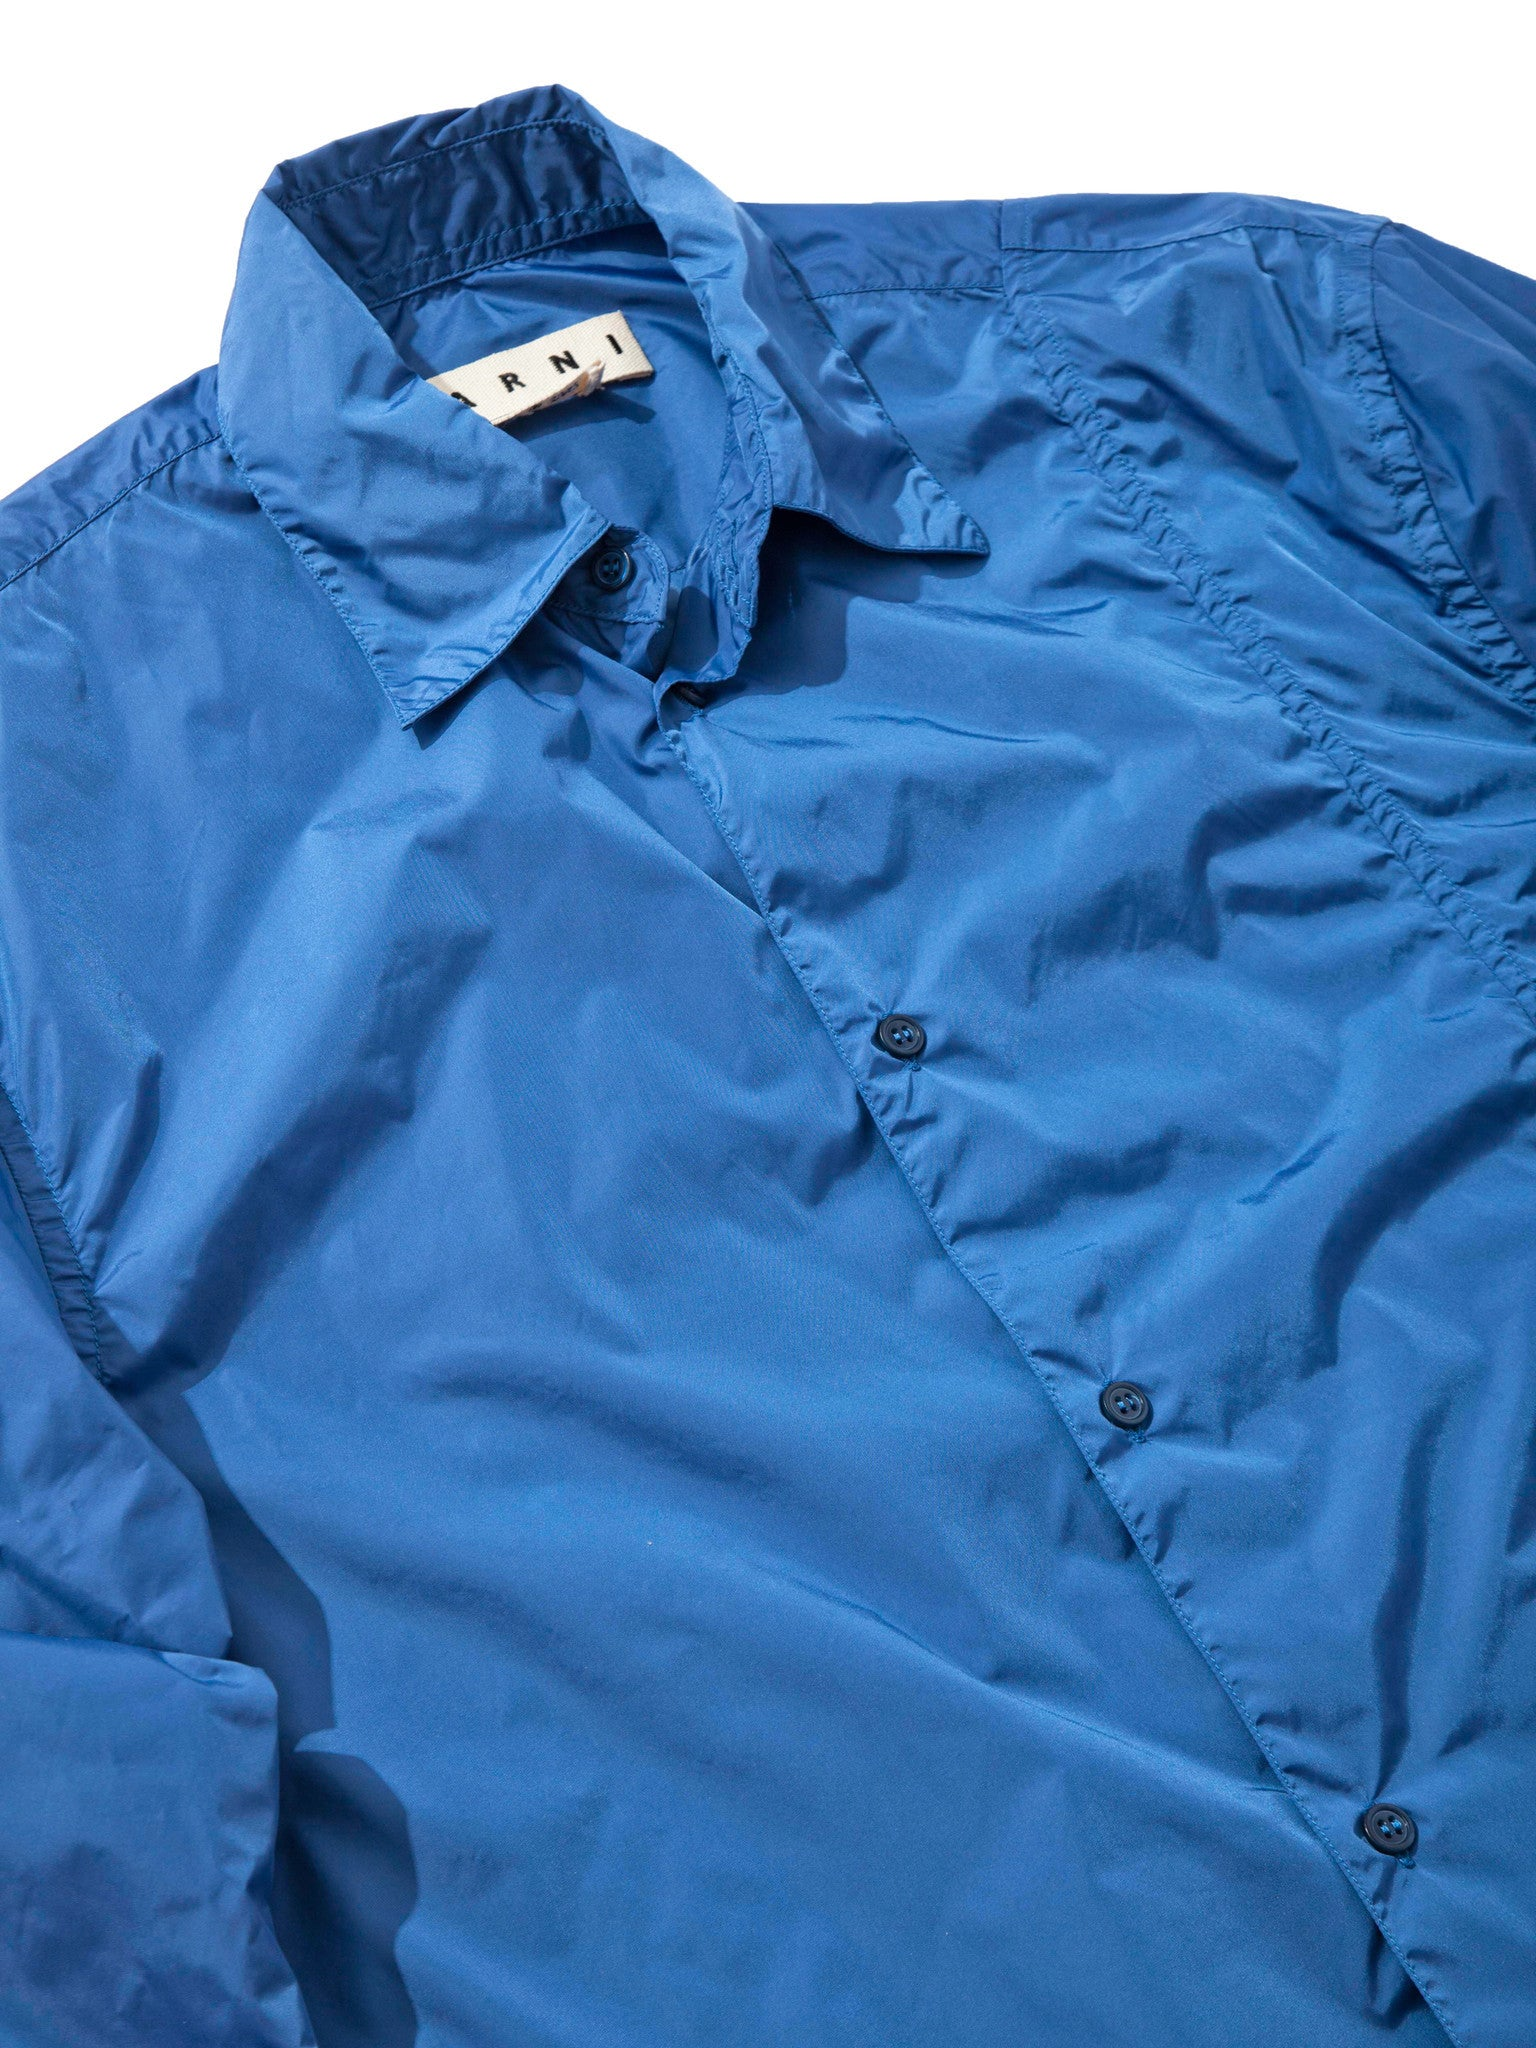 Waterproof Nylon Shirt